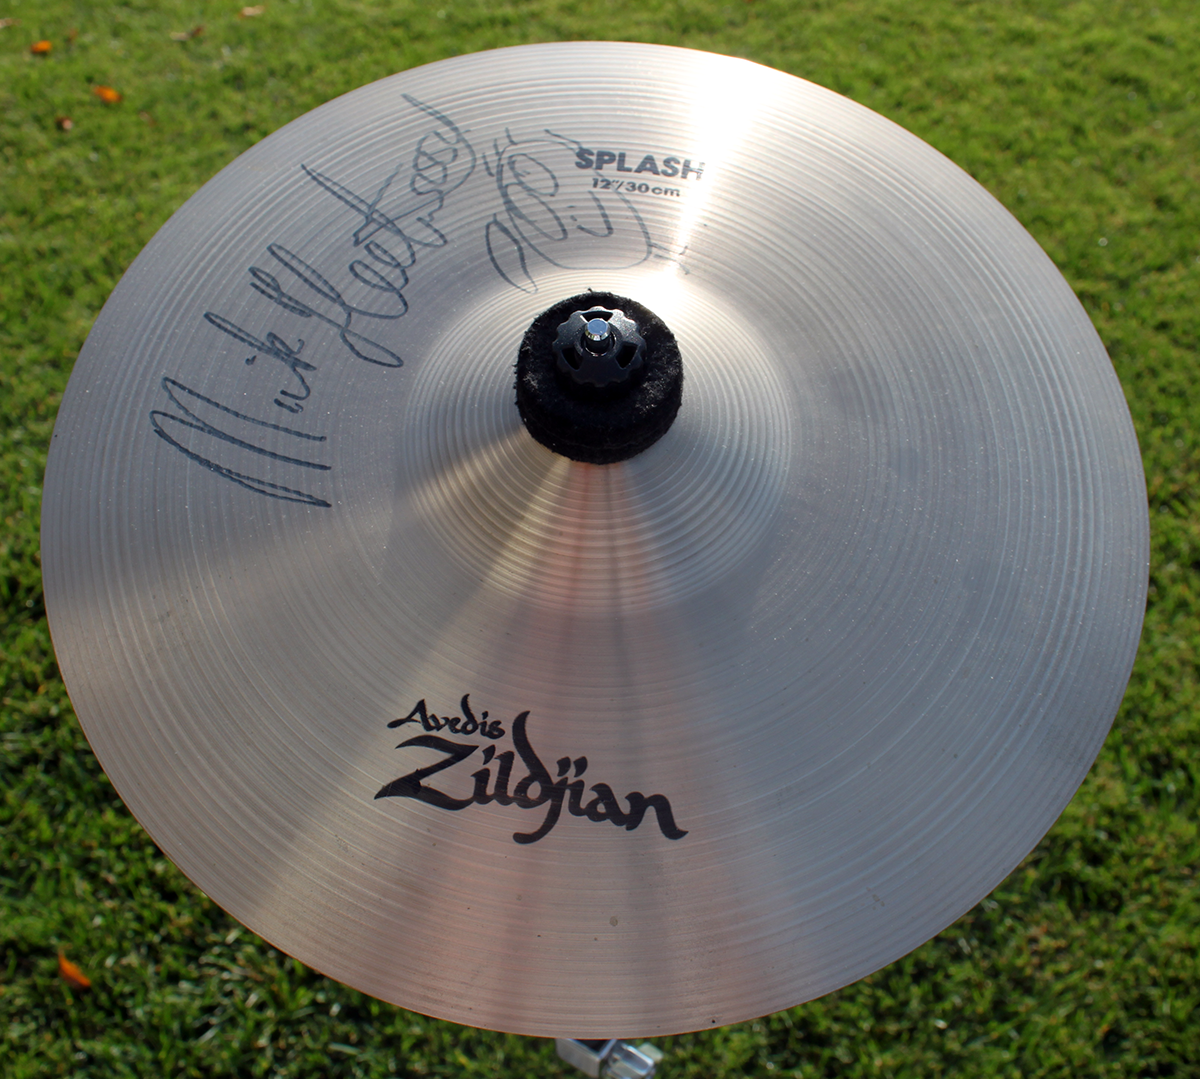 Mick Fleetwood Signed Cymbal